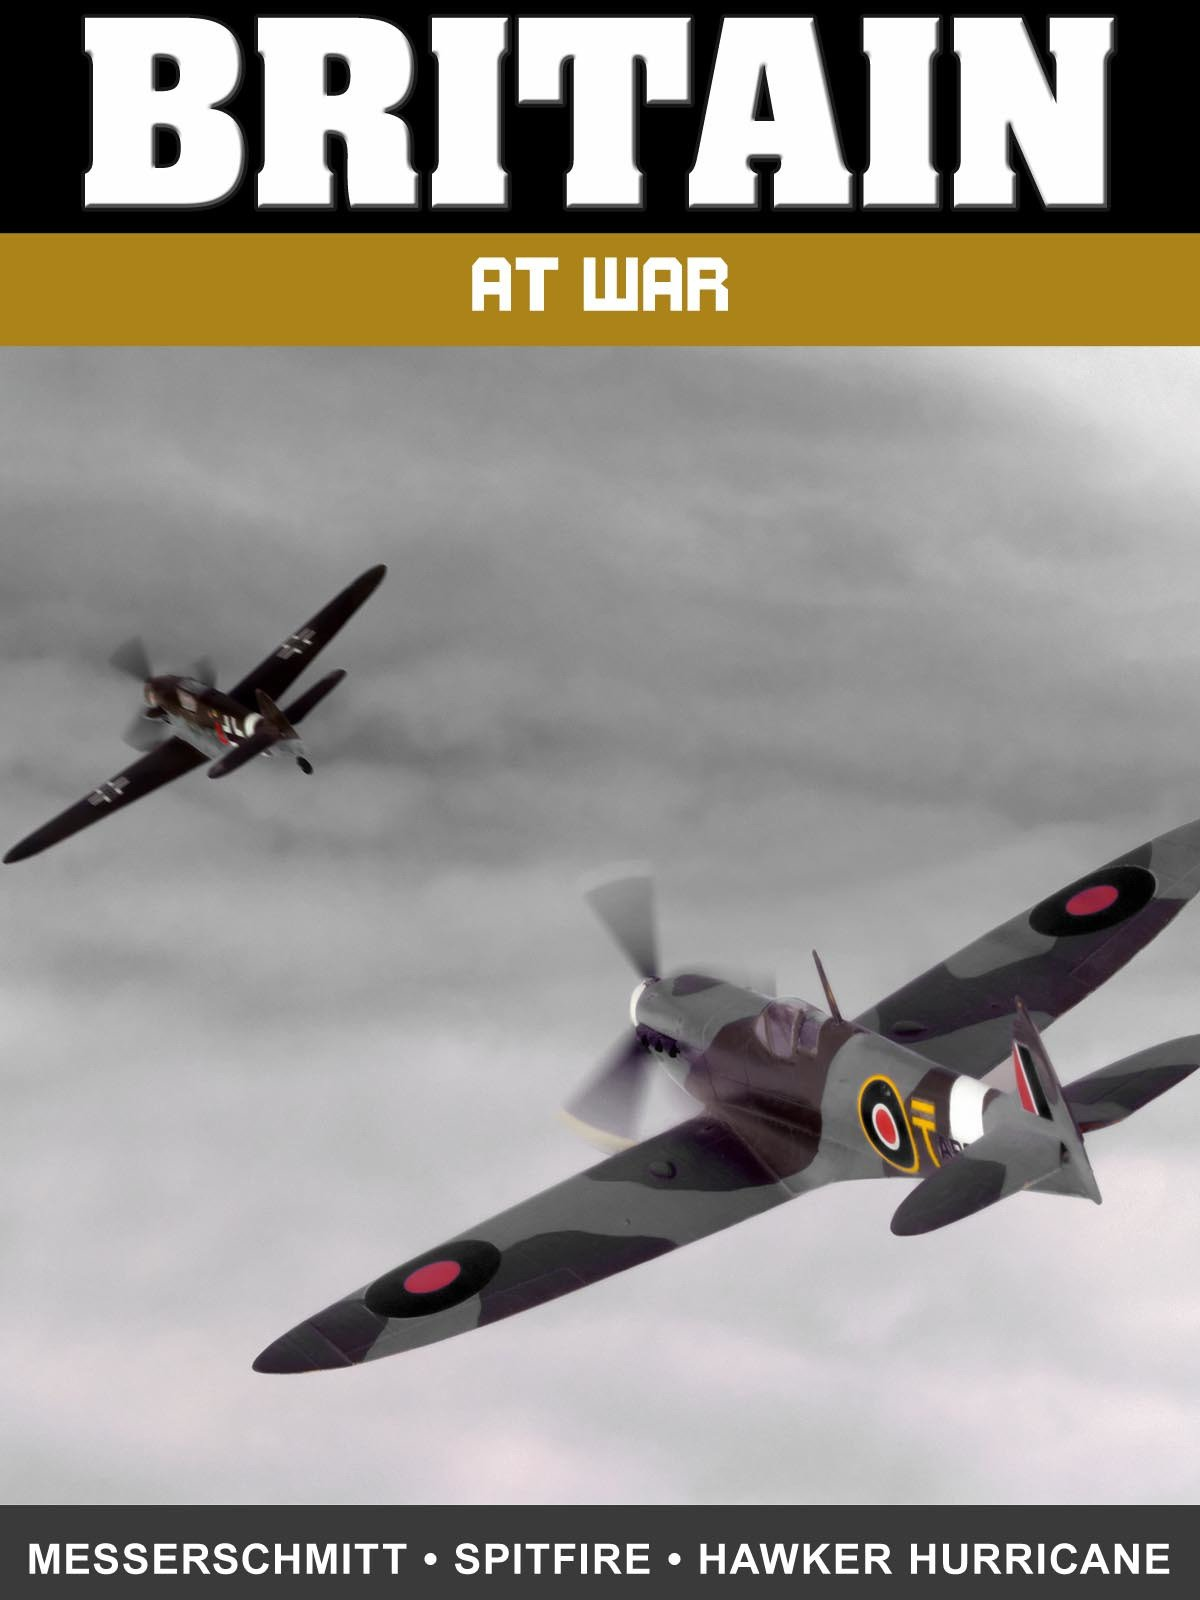 Britain at War: Messerschmidt, Spitfire, and Hawker Hurricane